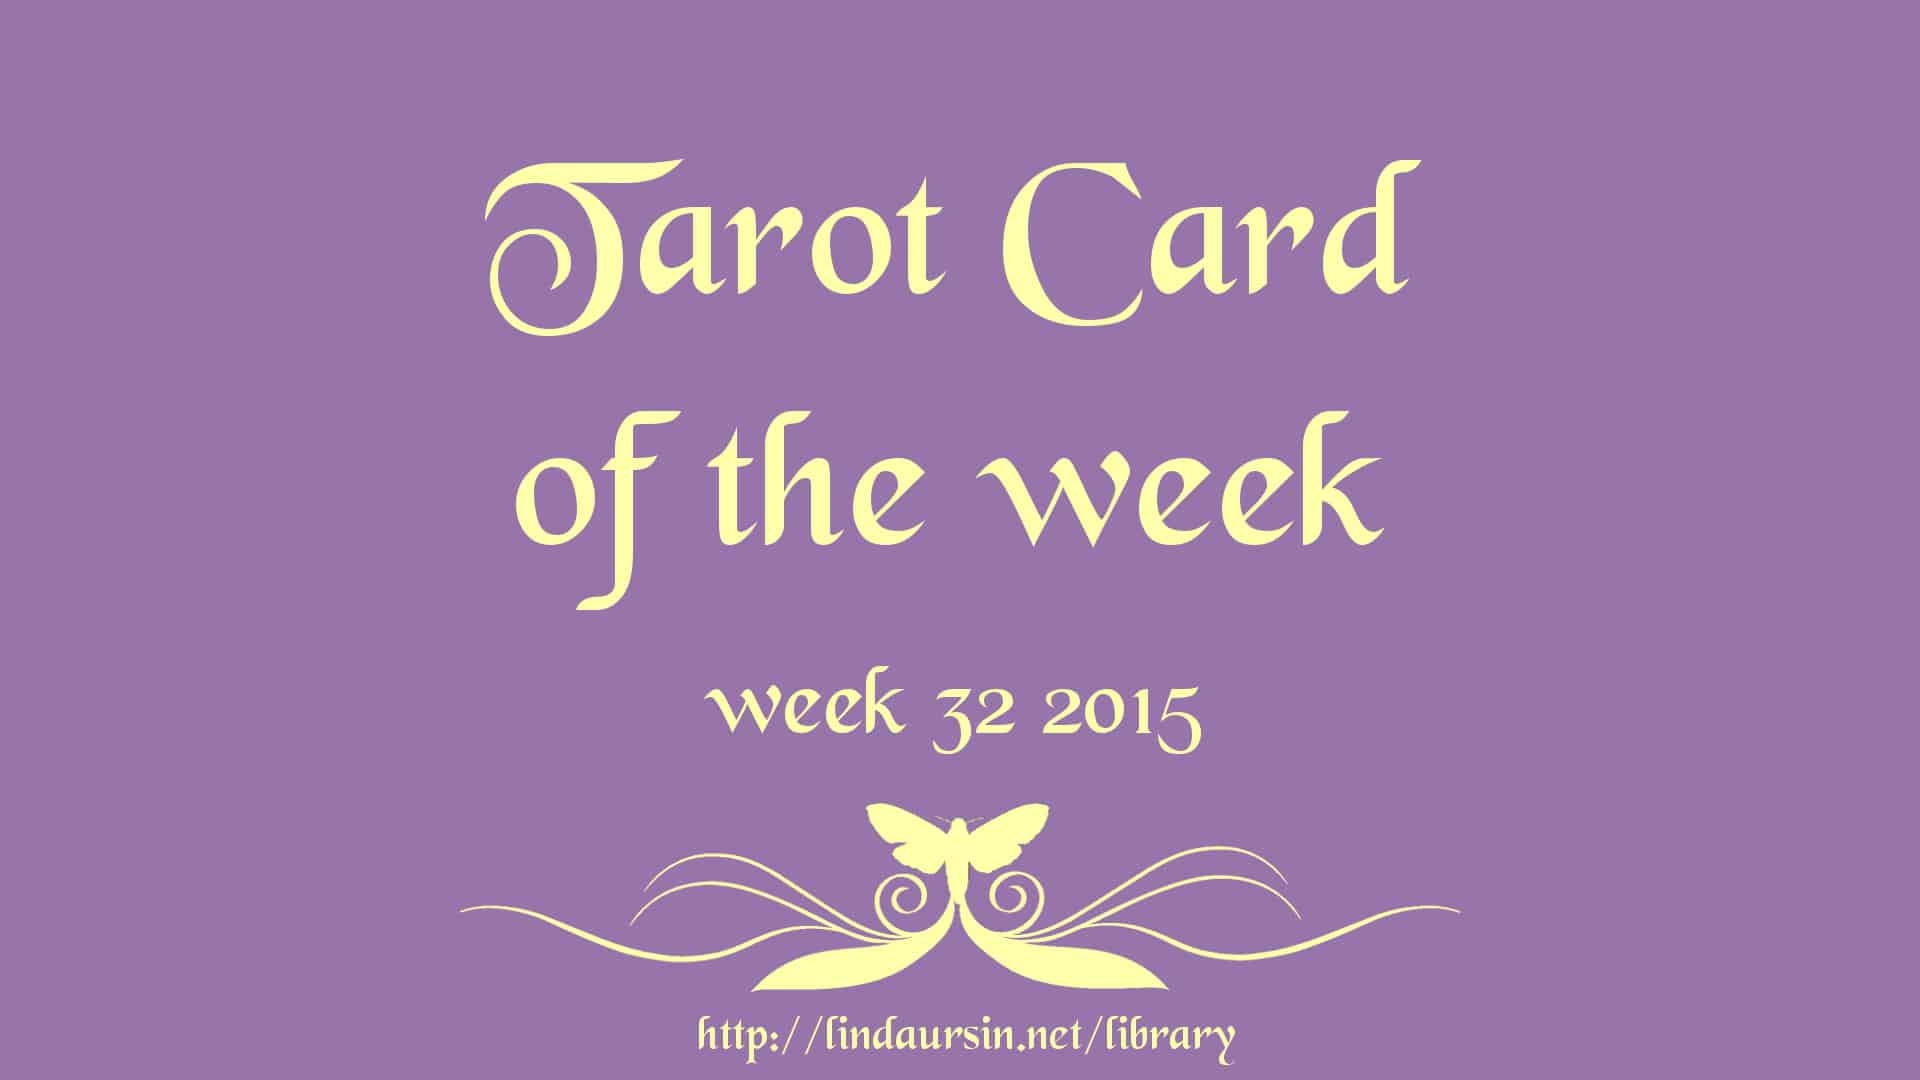 Your weekly Tarot card, week 32